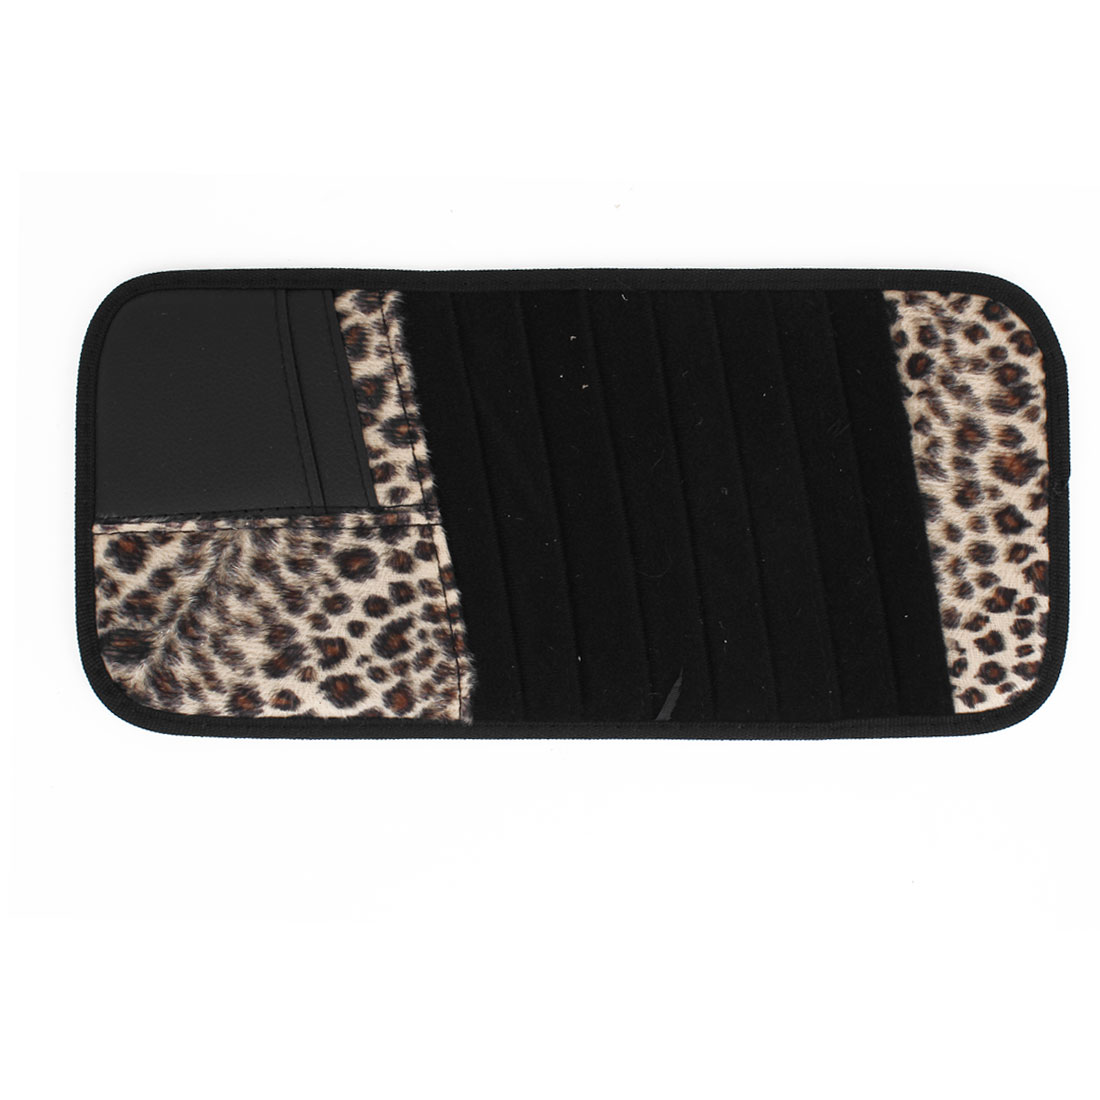 Vehicle Car Sun Visor Leopard Pattern 8pcs CD DVD Storage Card Holder Case Black Beige